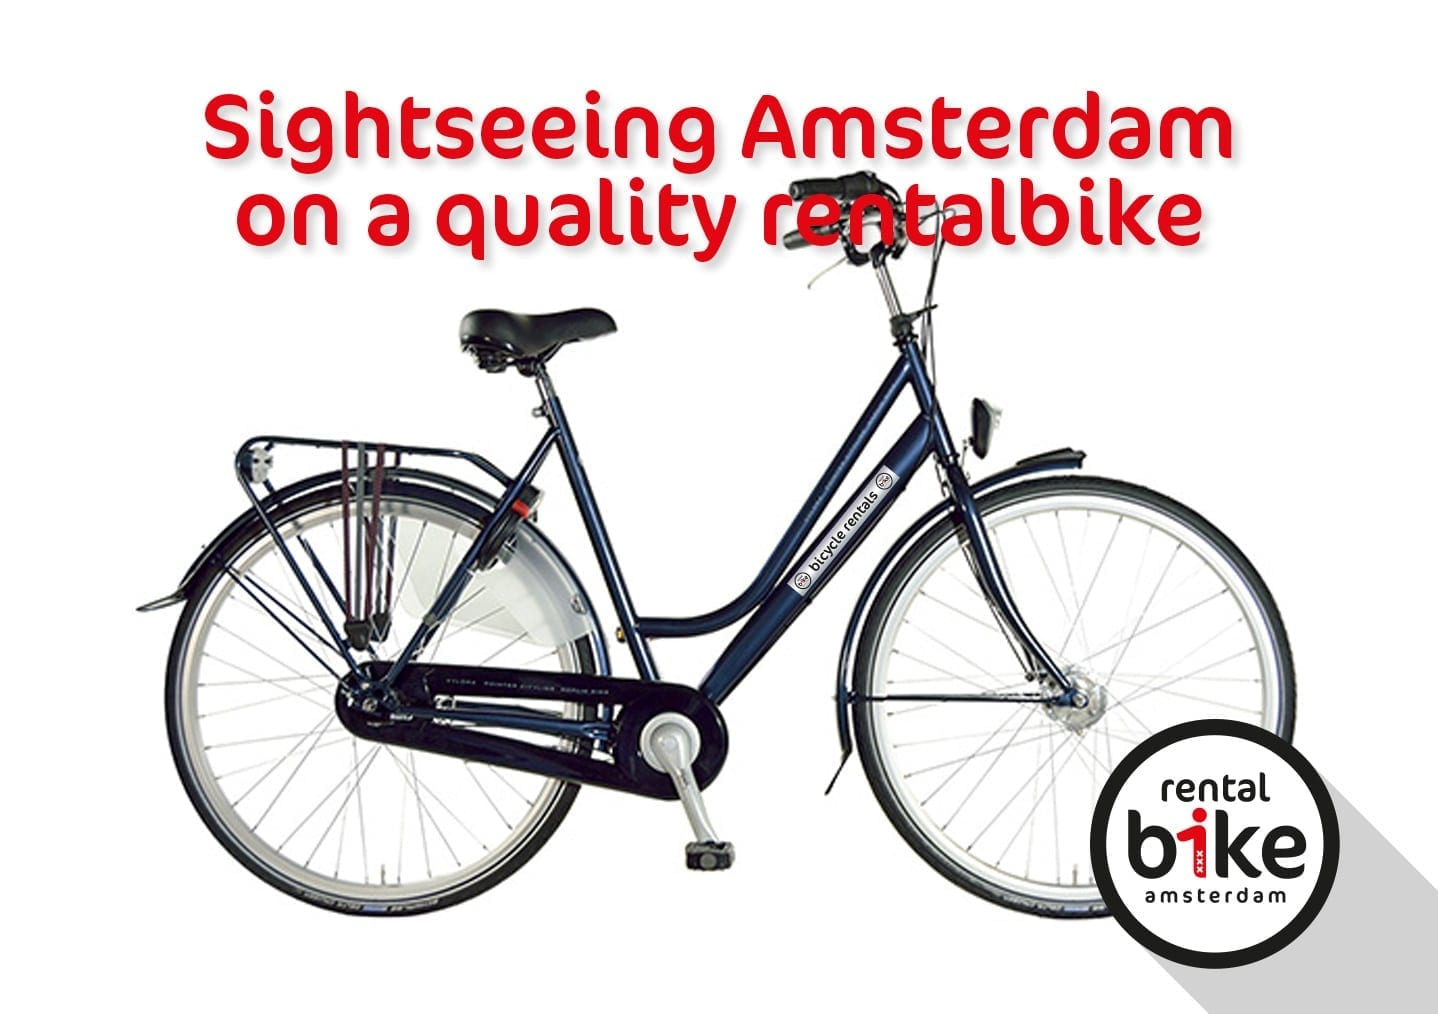 Sightseeing Amsterdam on a quality rentalbike